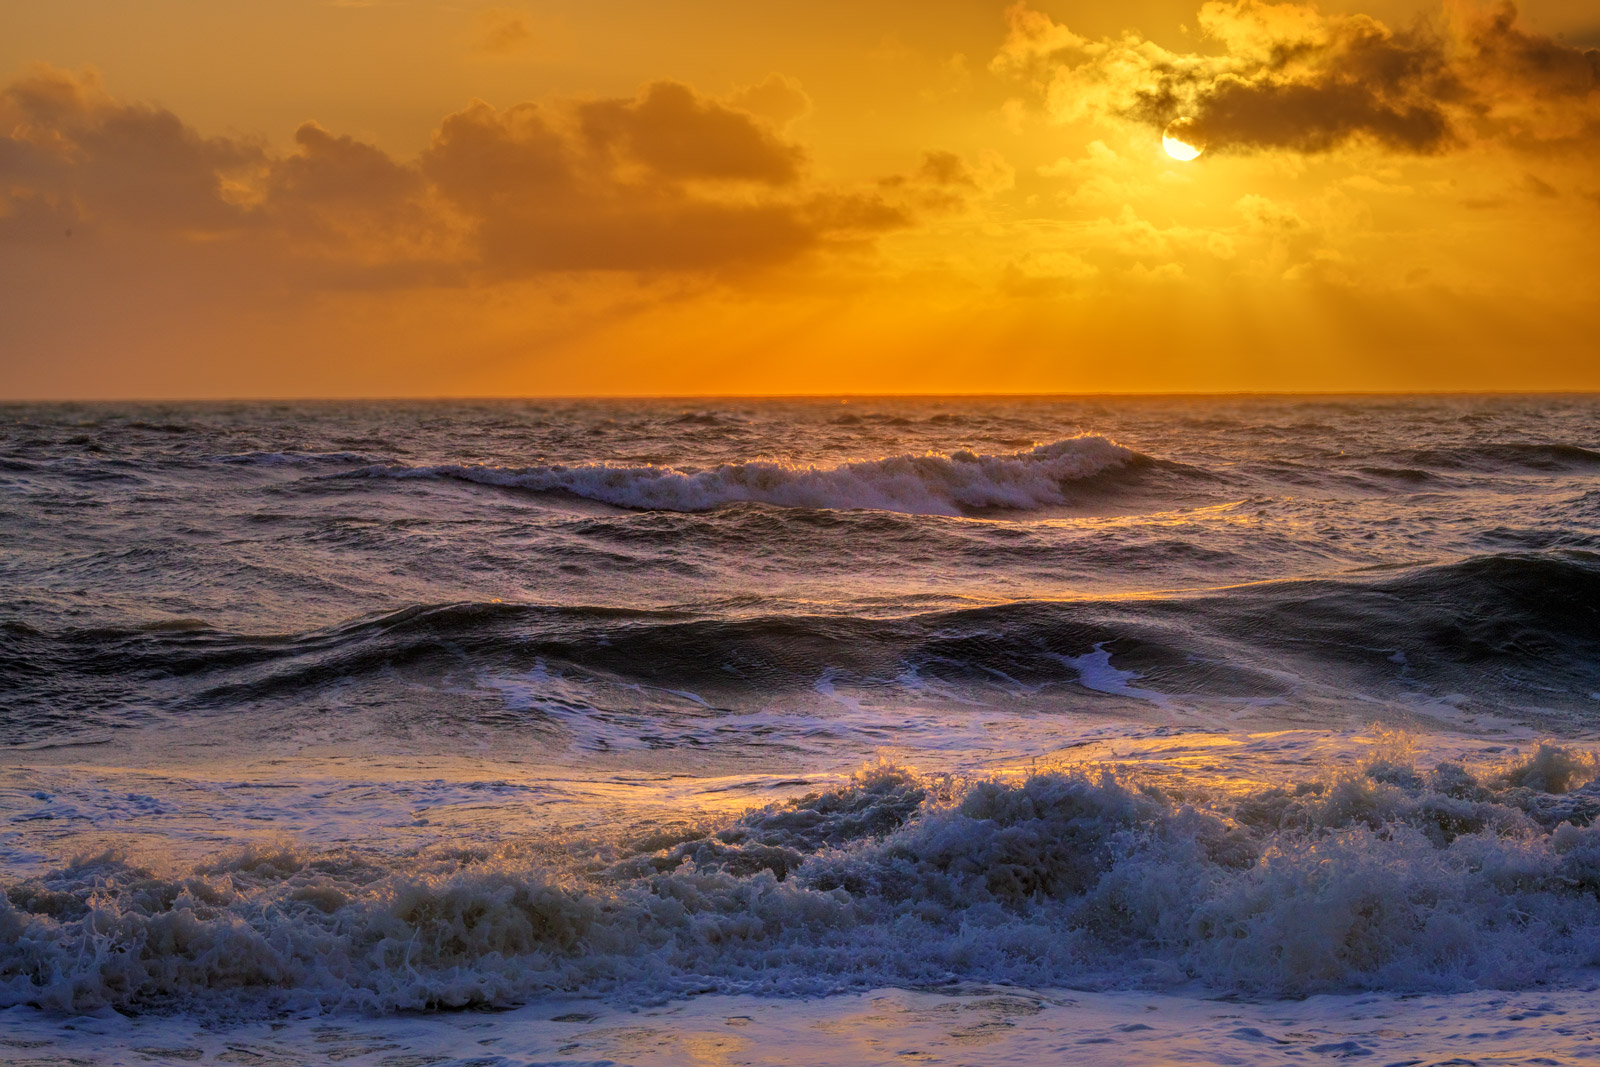 Florida, Tequesta, Coral Cove, Storm, Waves, Sunrise, limited edition, photograph, photo